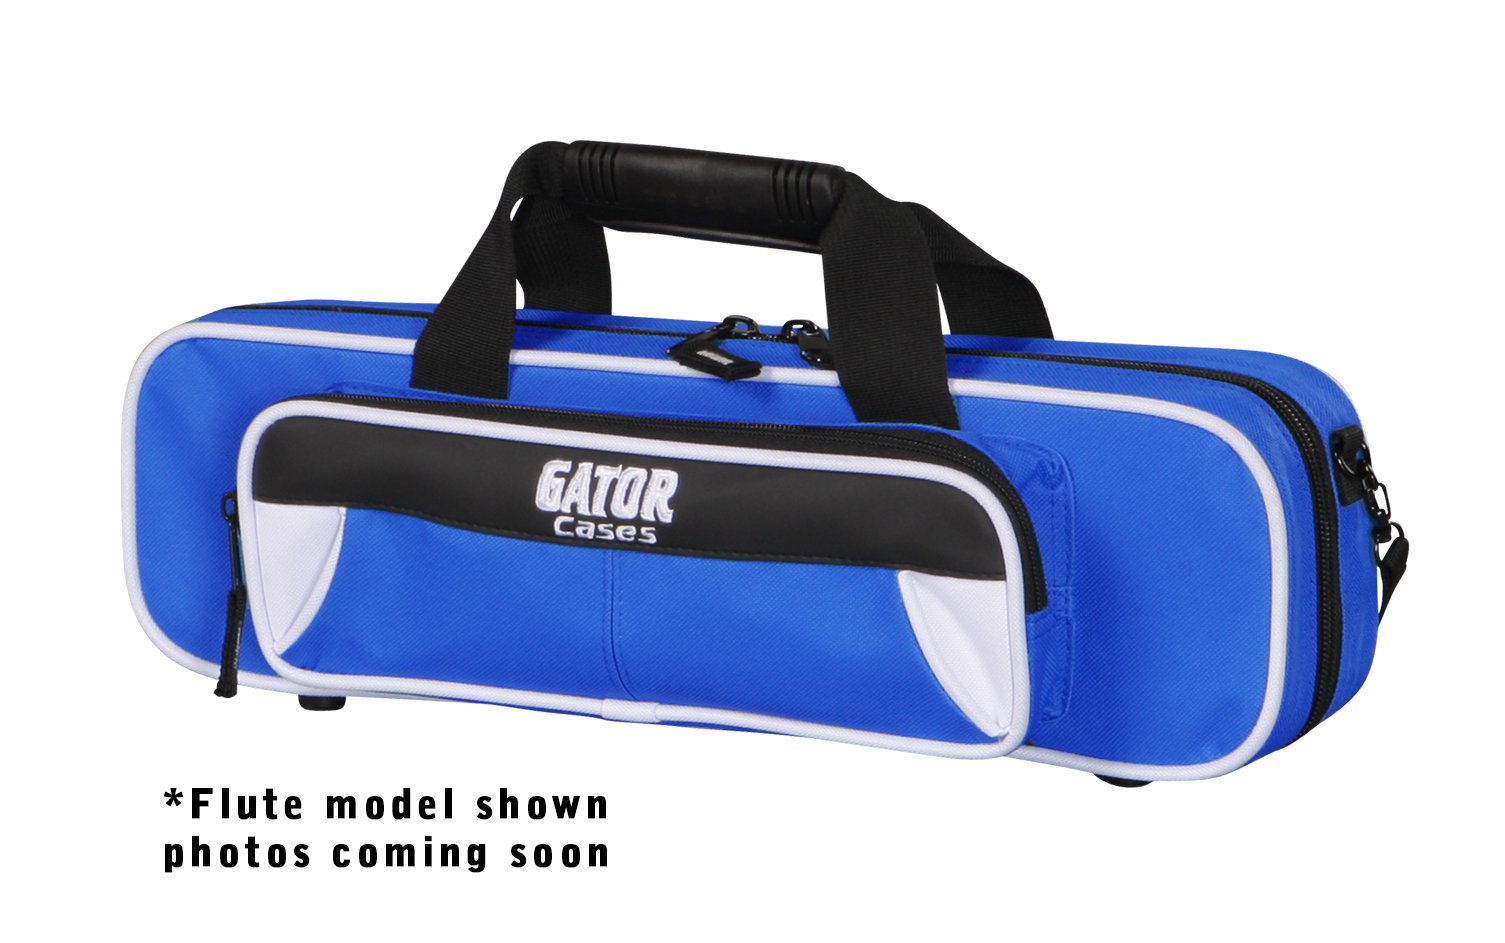 Gator Cases GL-TRUMPET-WB Spirit Series Trumpet Case White & Blue with Lightweight Nylon Lightweight Exterior